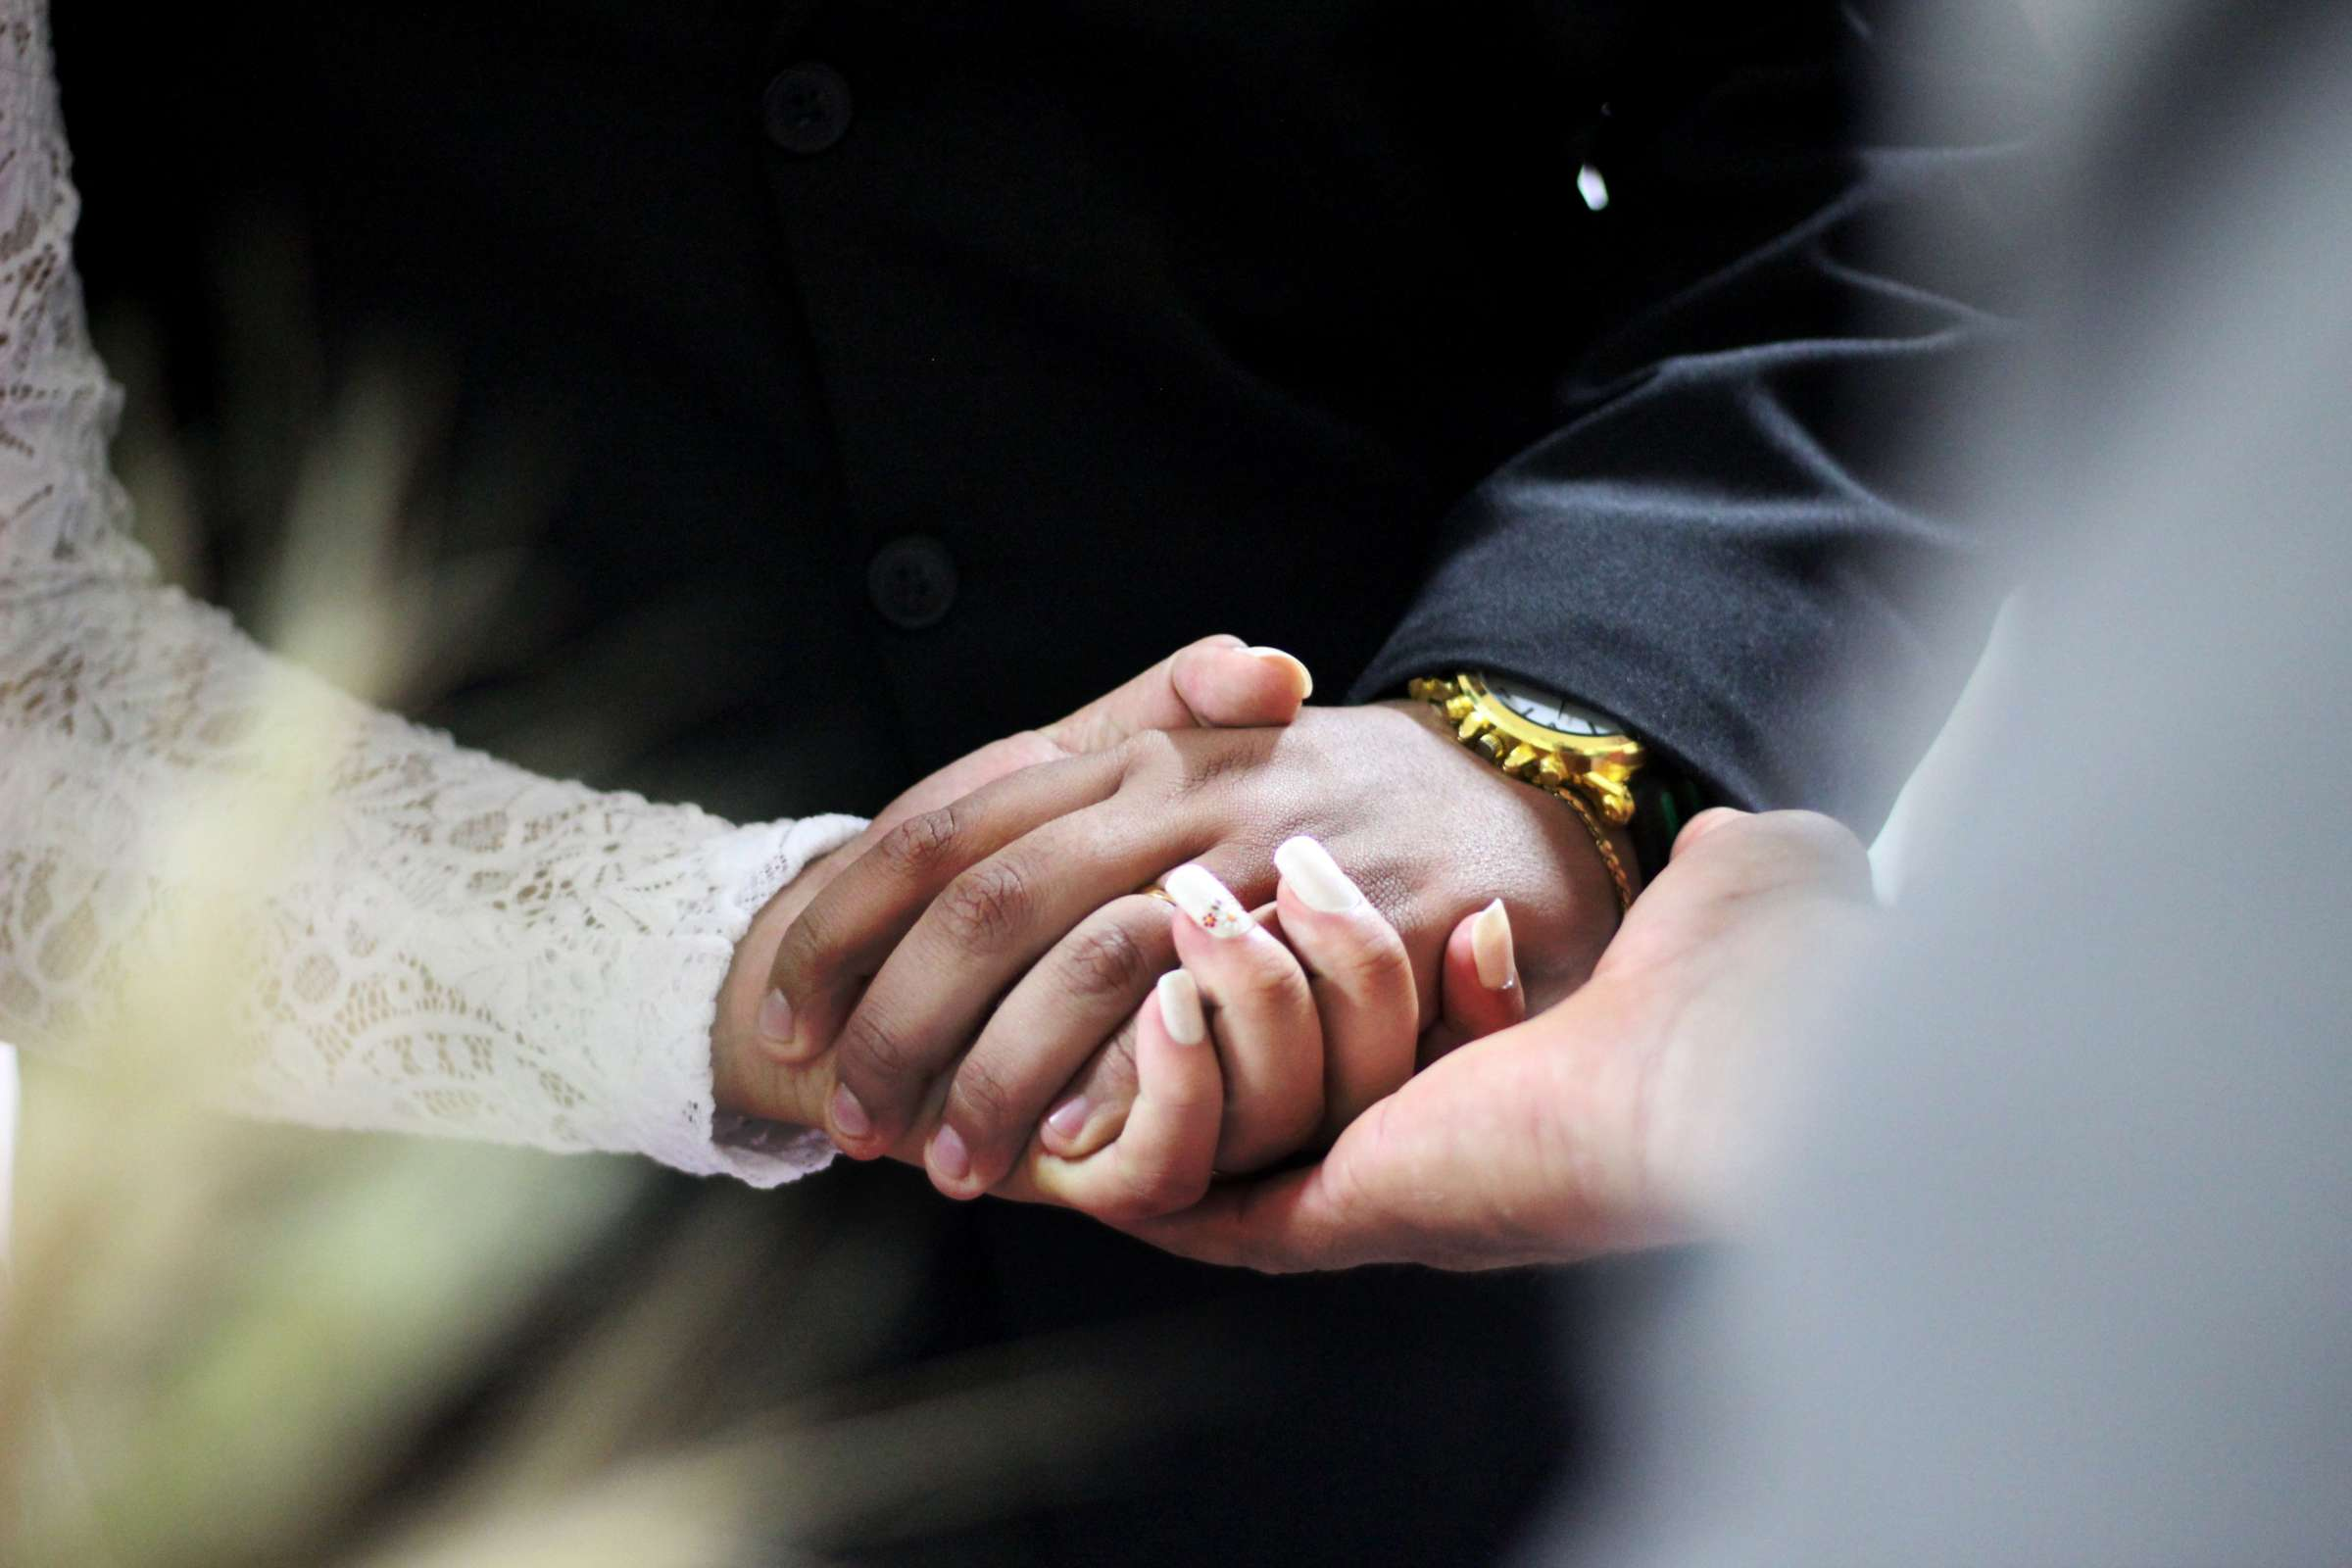 Christianity Can I be married in church?